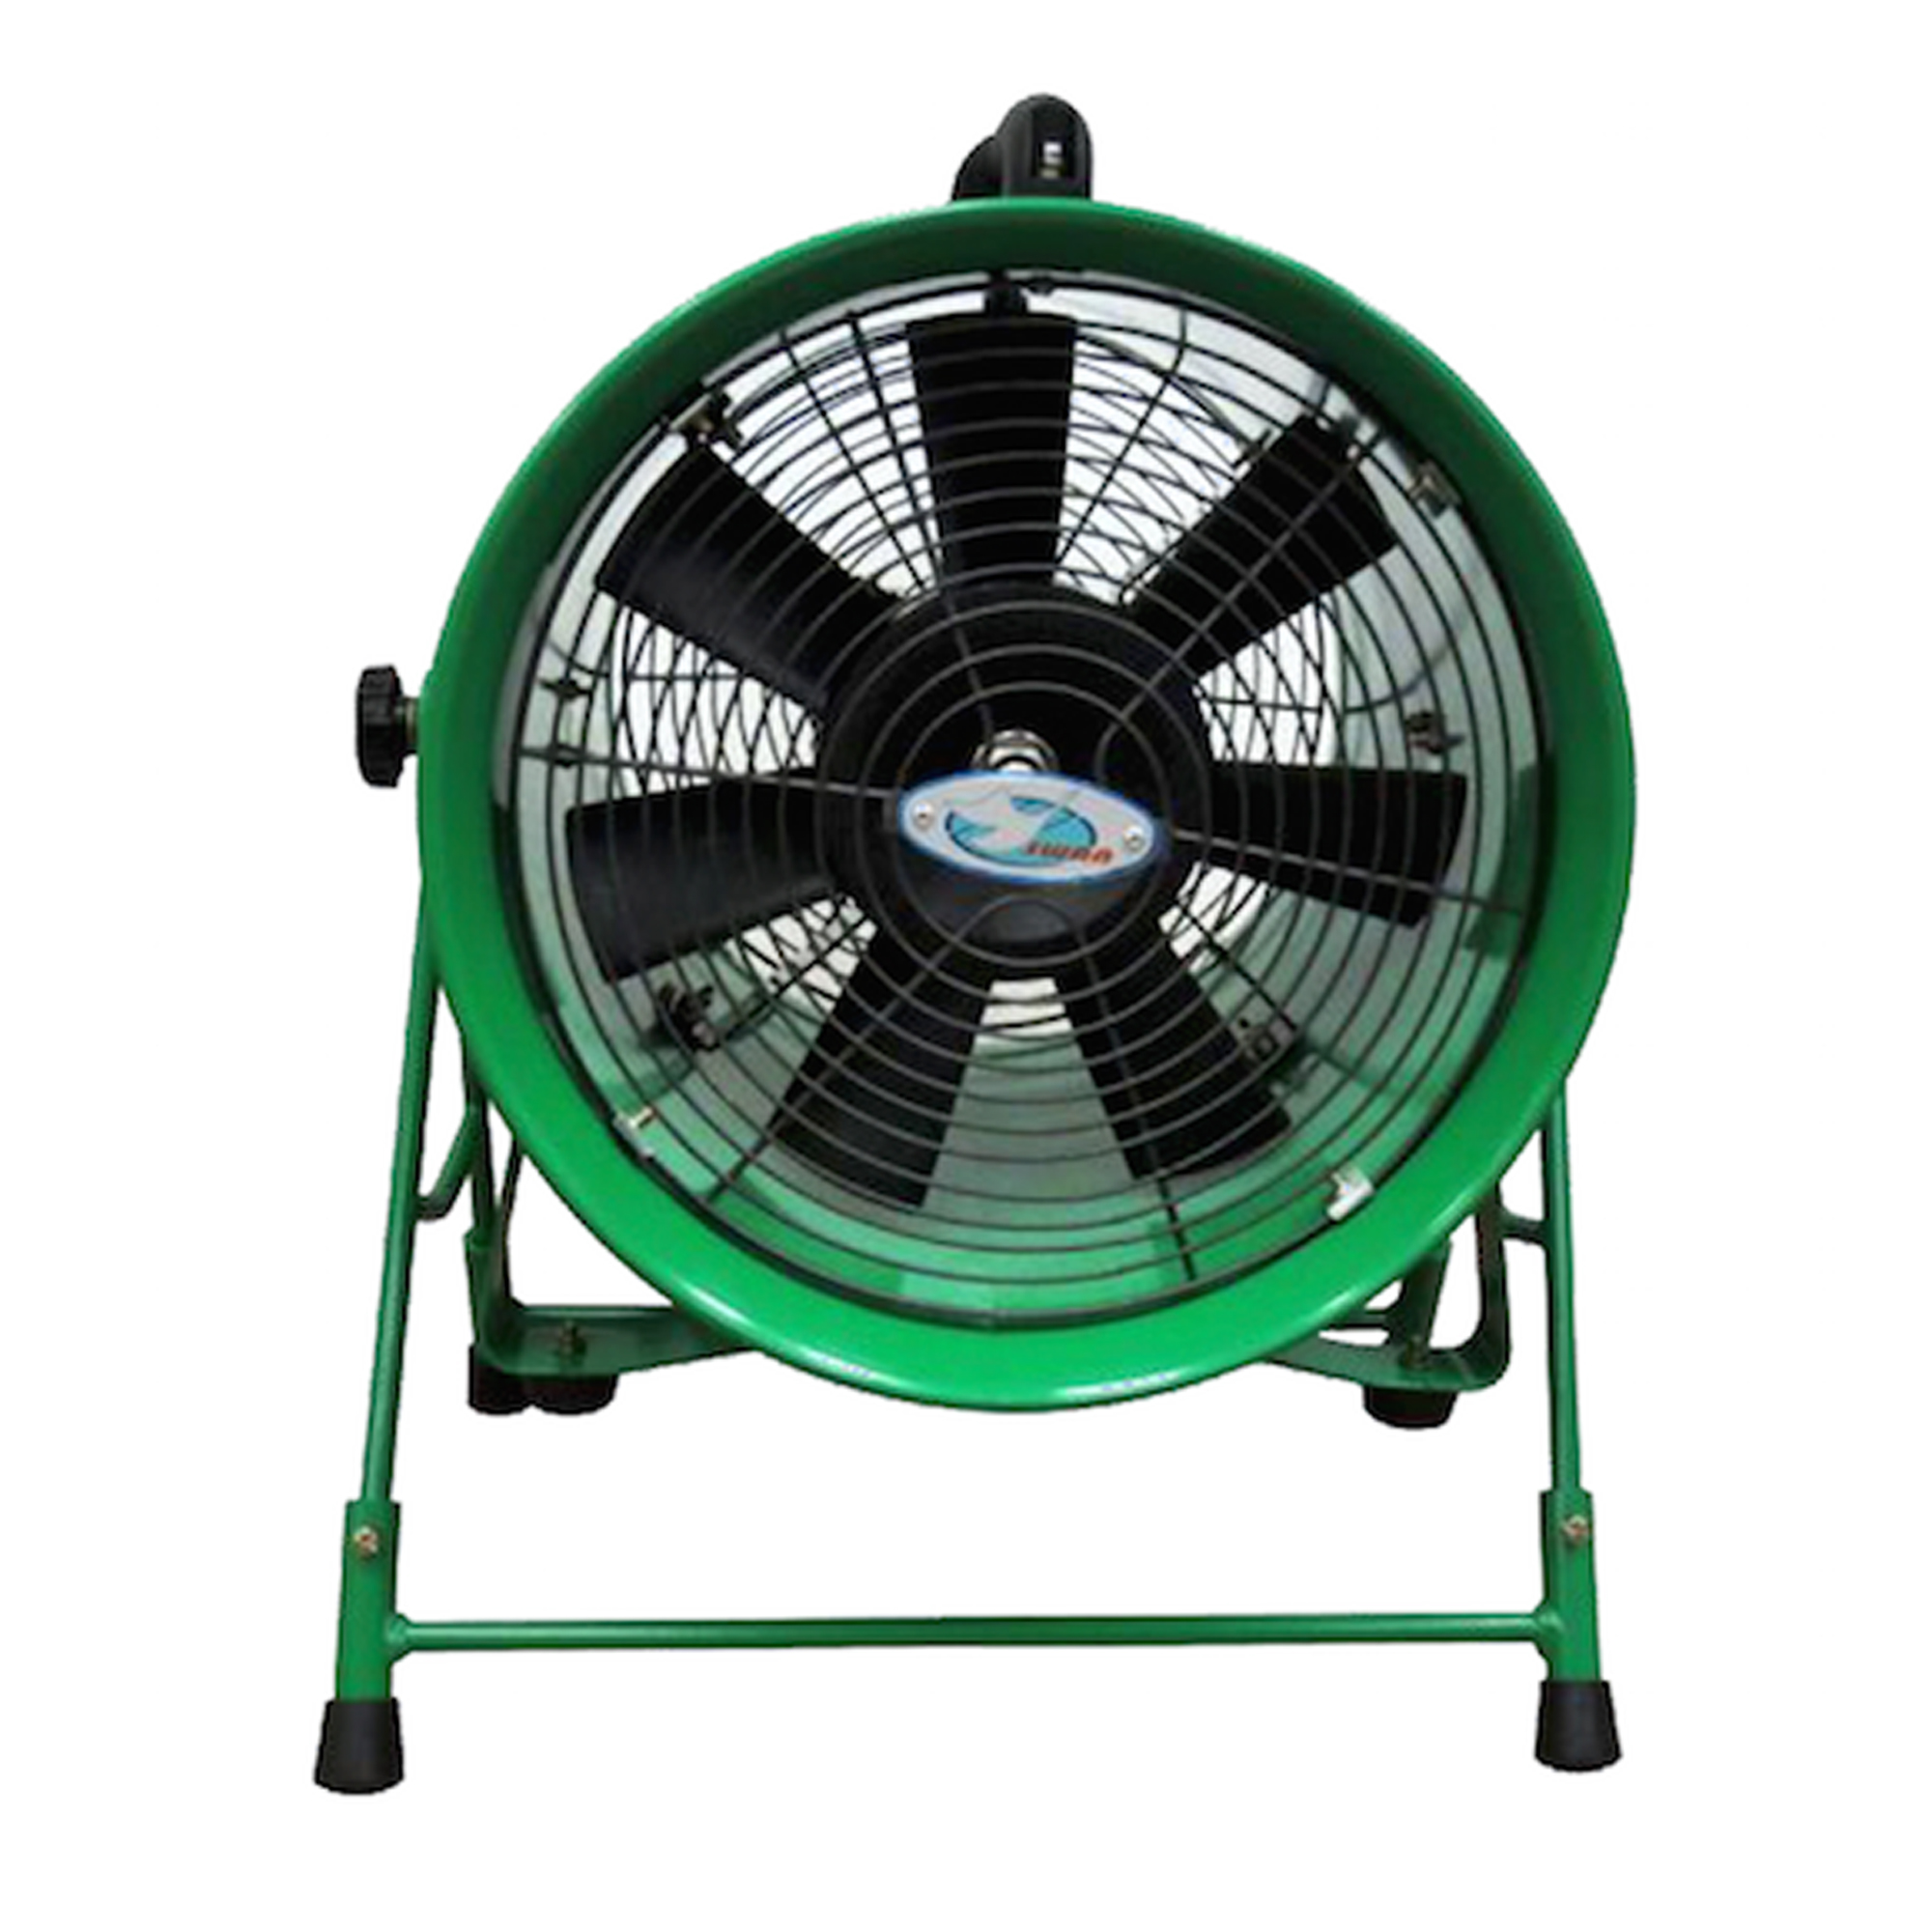 Swan SHT30A Portable Ventilation Fan with Flexible Hose